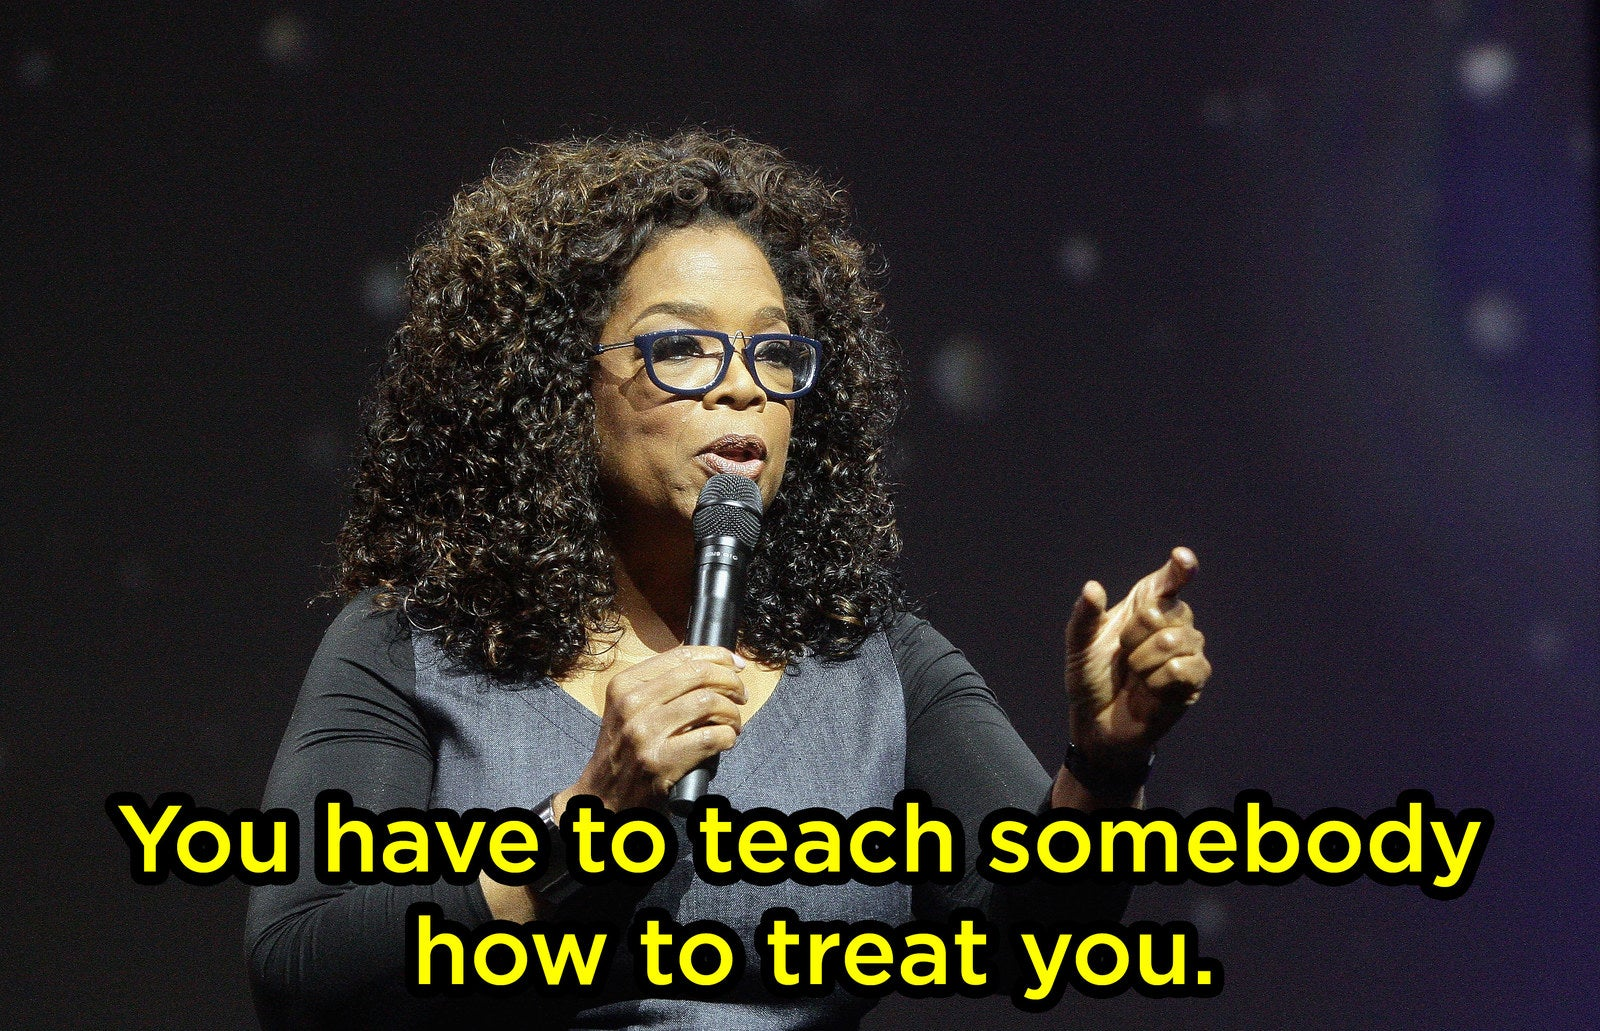 And can't you just picture Oprah saying it?